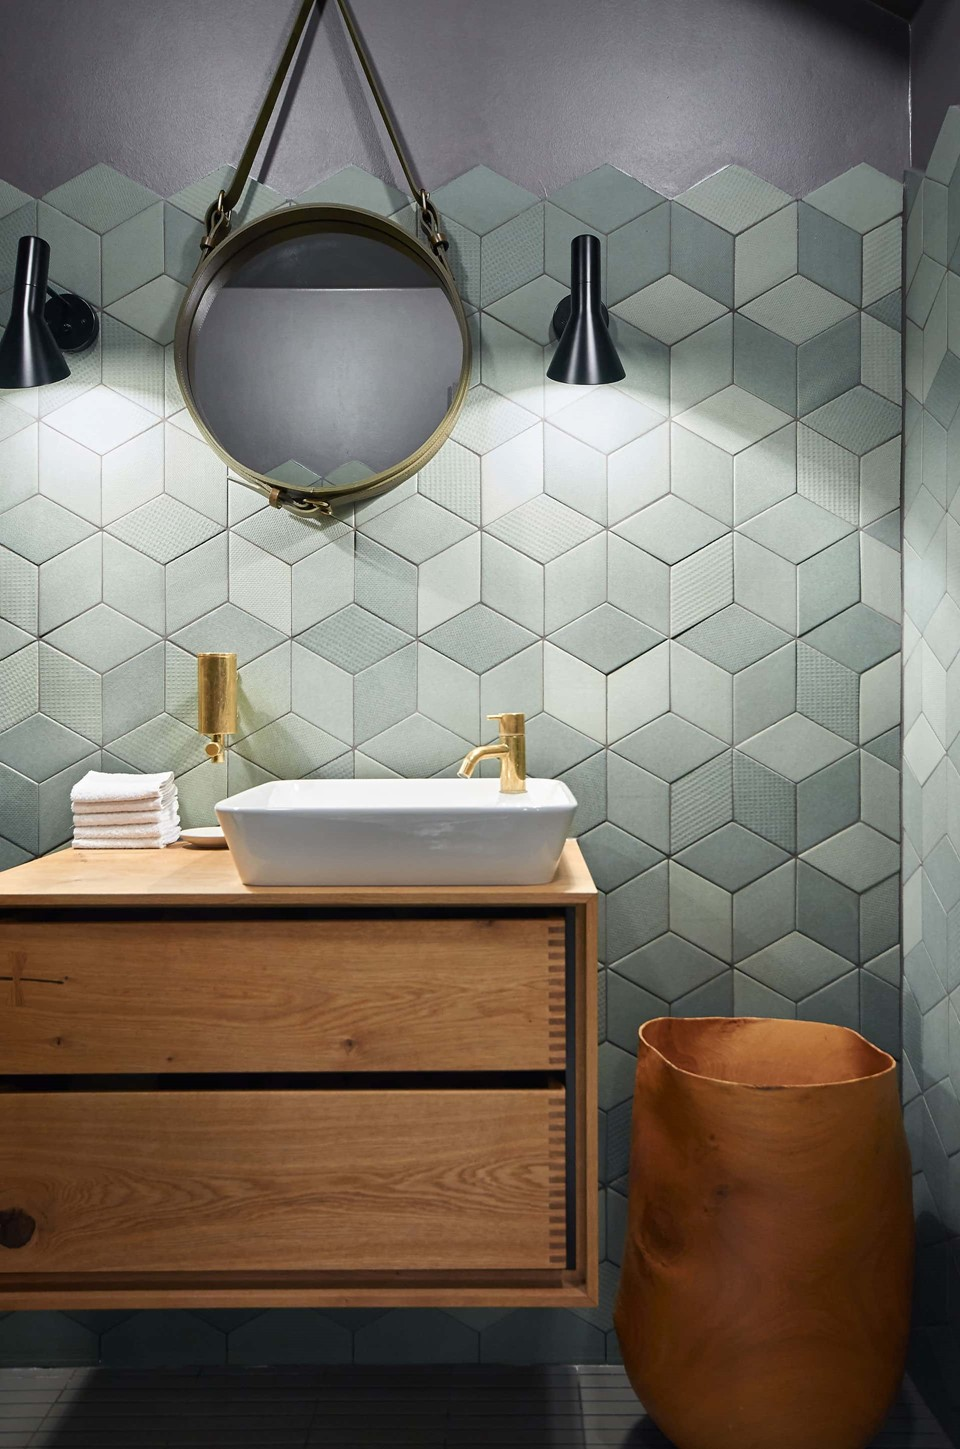 herringbone-douglas-dark-flooring_antracite-grey-oil_kadeau-restaurant-copenhagen_bathroom_dinesen_01.jpg